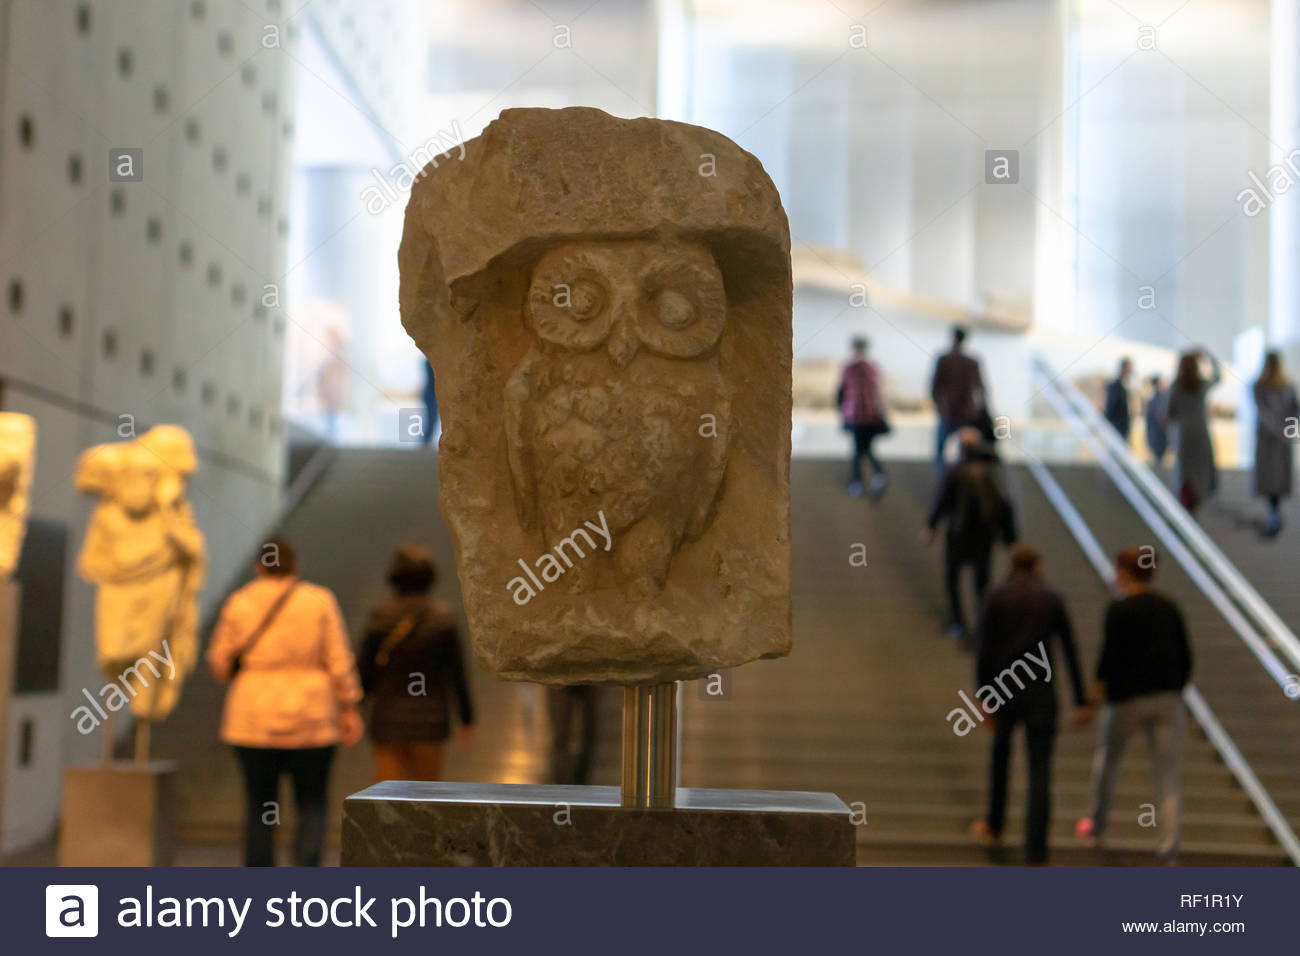 The owl is the symbol of Athens & the original sculpture can be found in the Acropolis Museum. It is awesome. - Stock Image